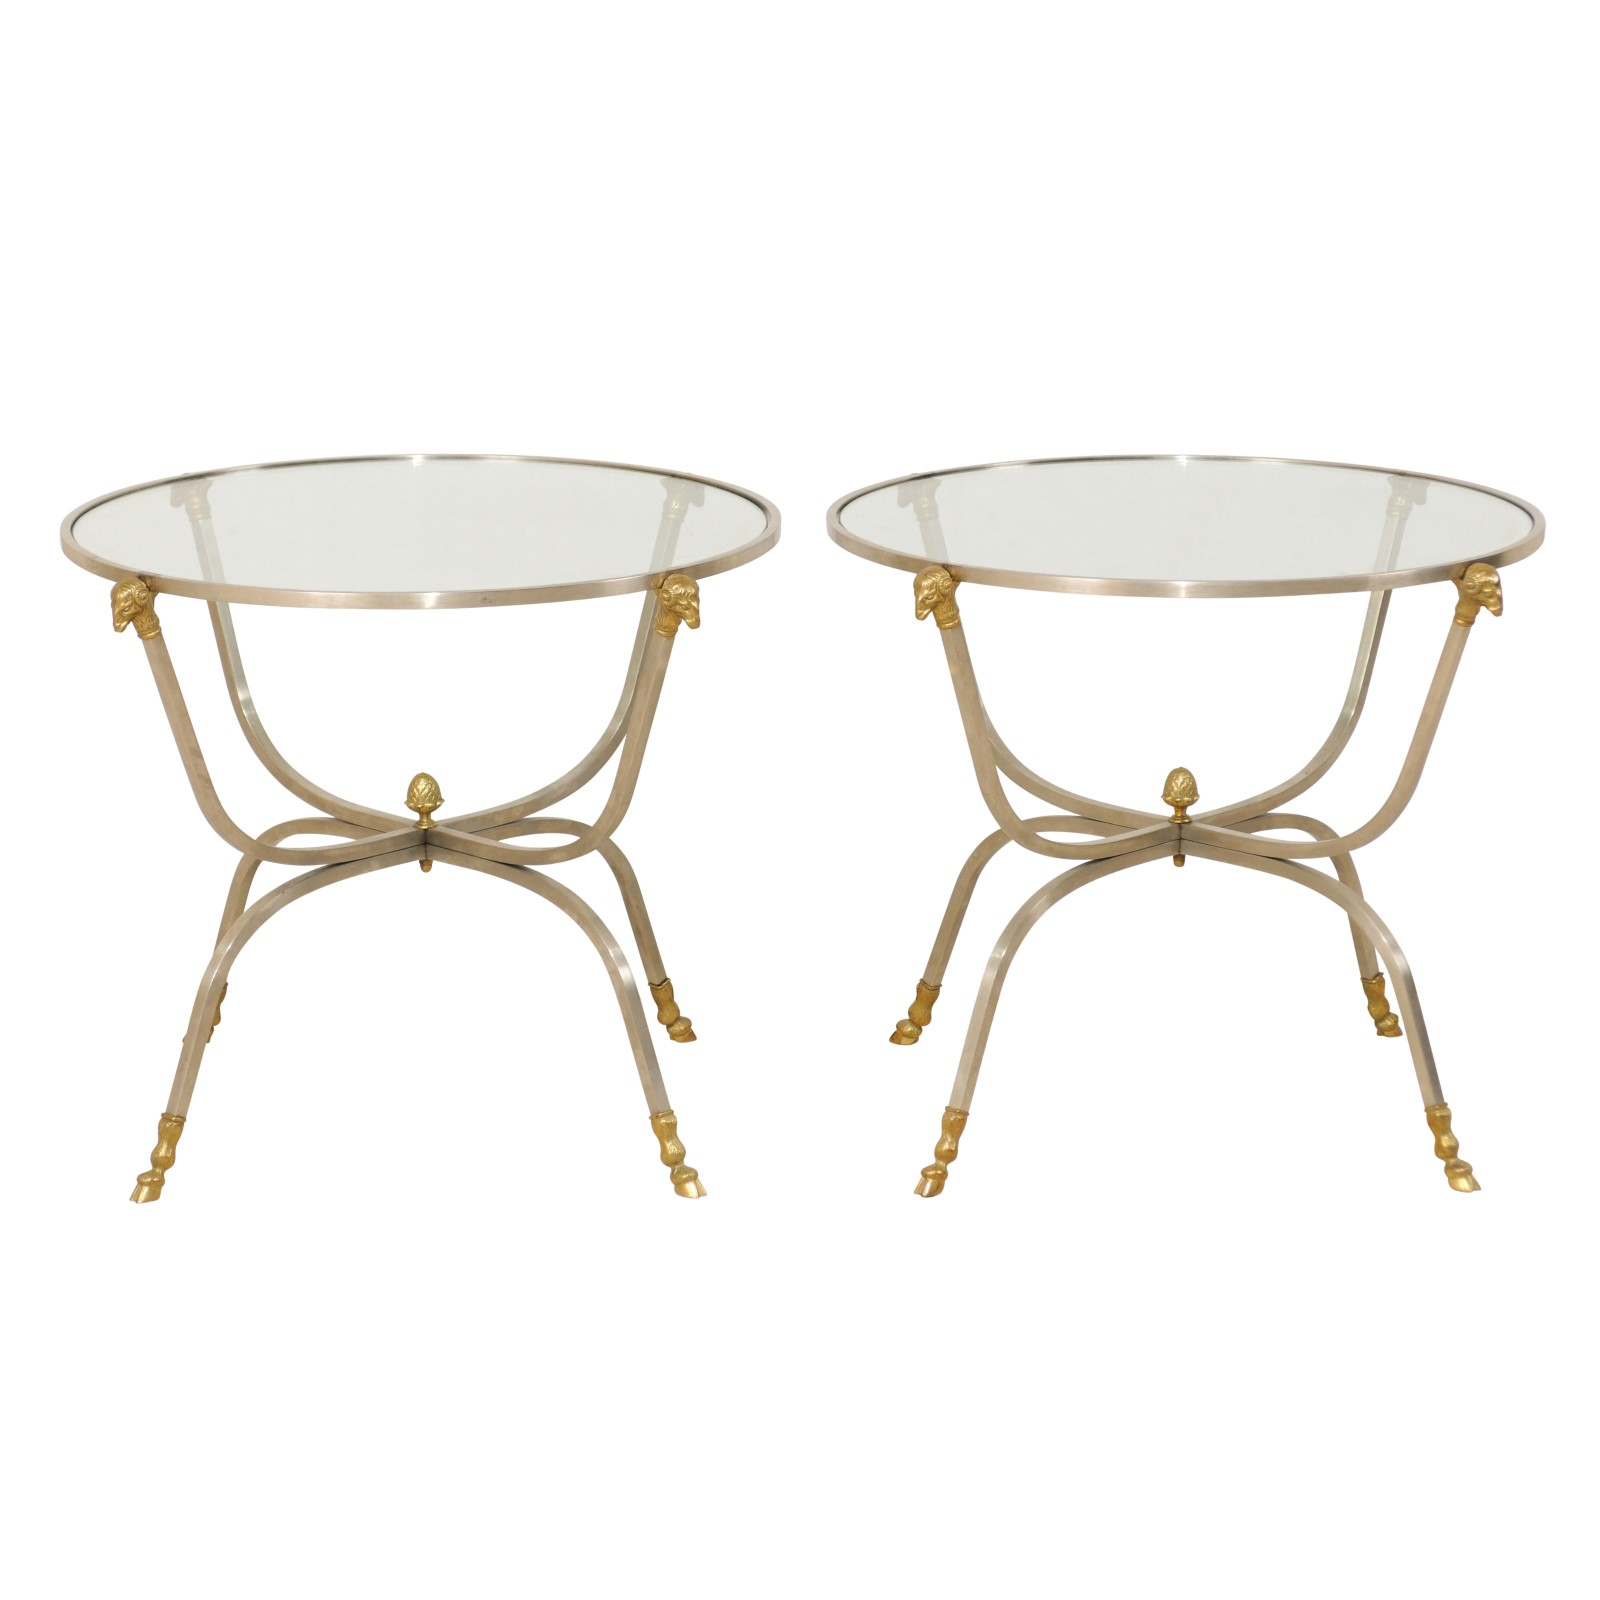 Fantastic Pair Of Italian Glass Top Tables 940 A Tyner Antiques Interior Design Ideas Clesiryabchikinfo